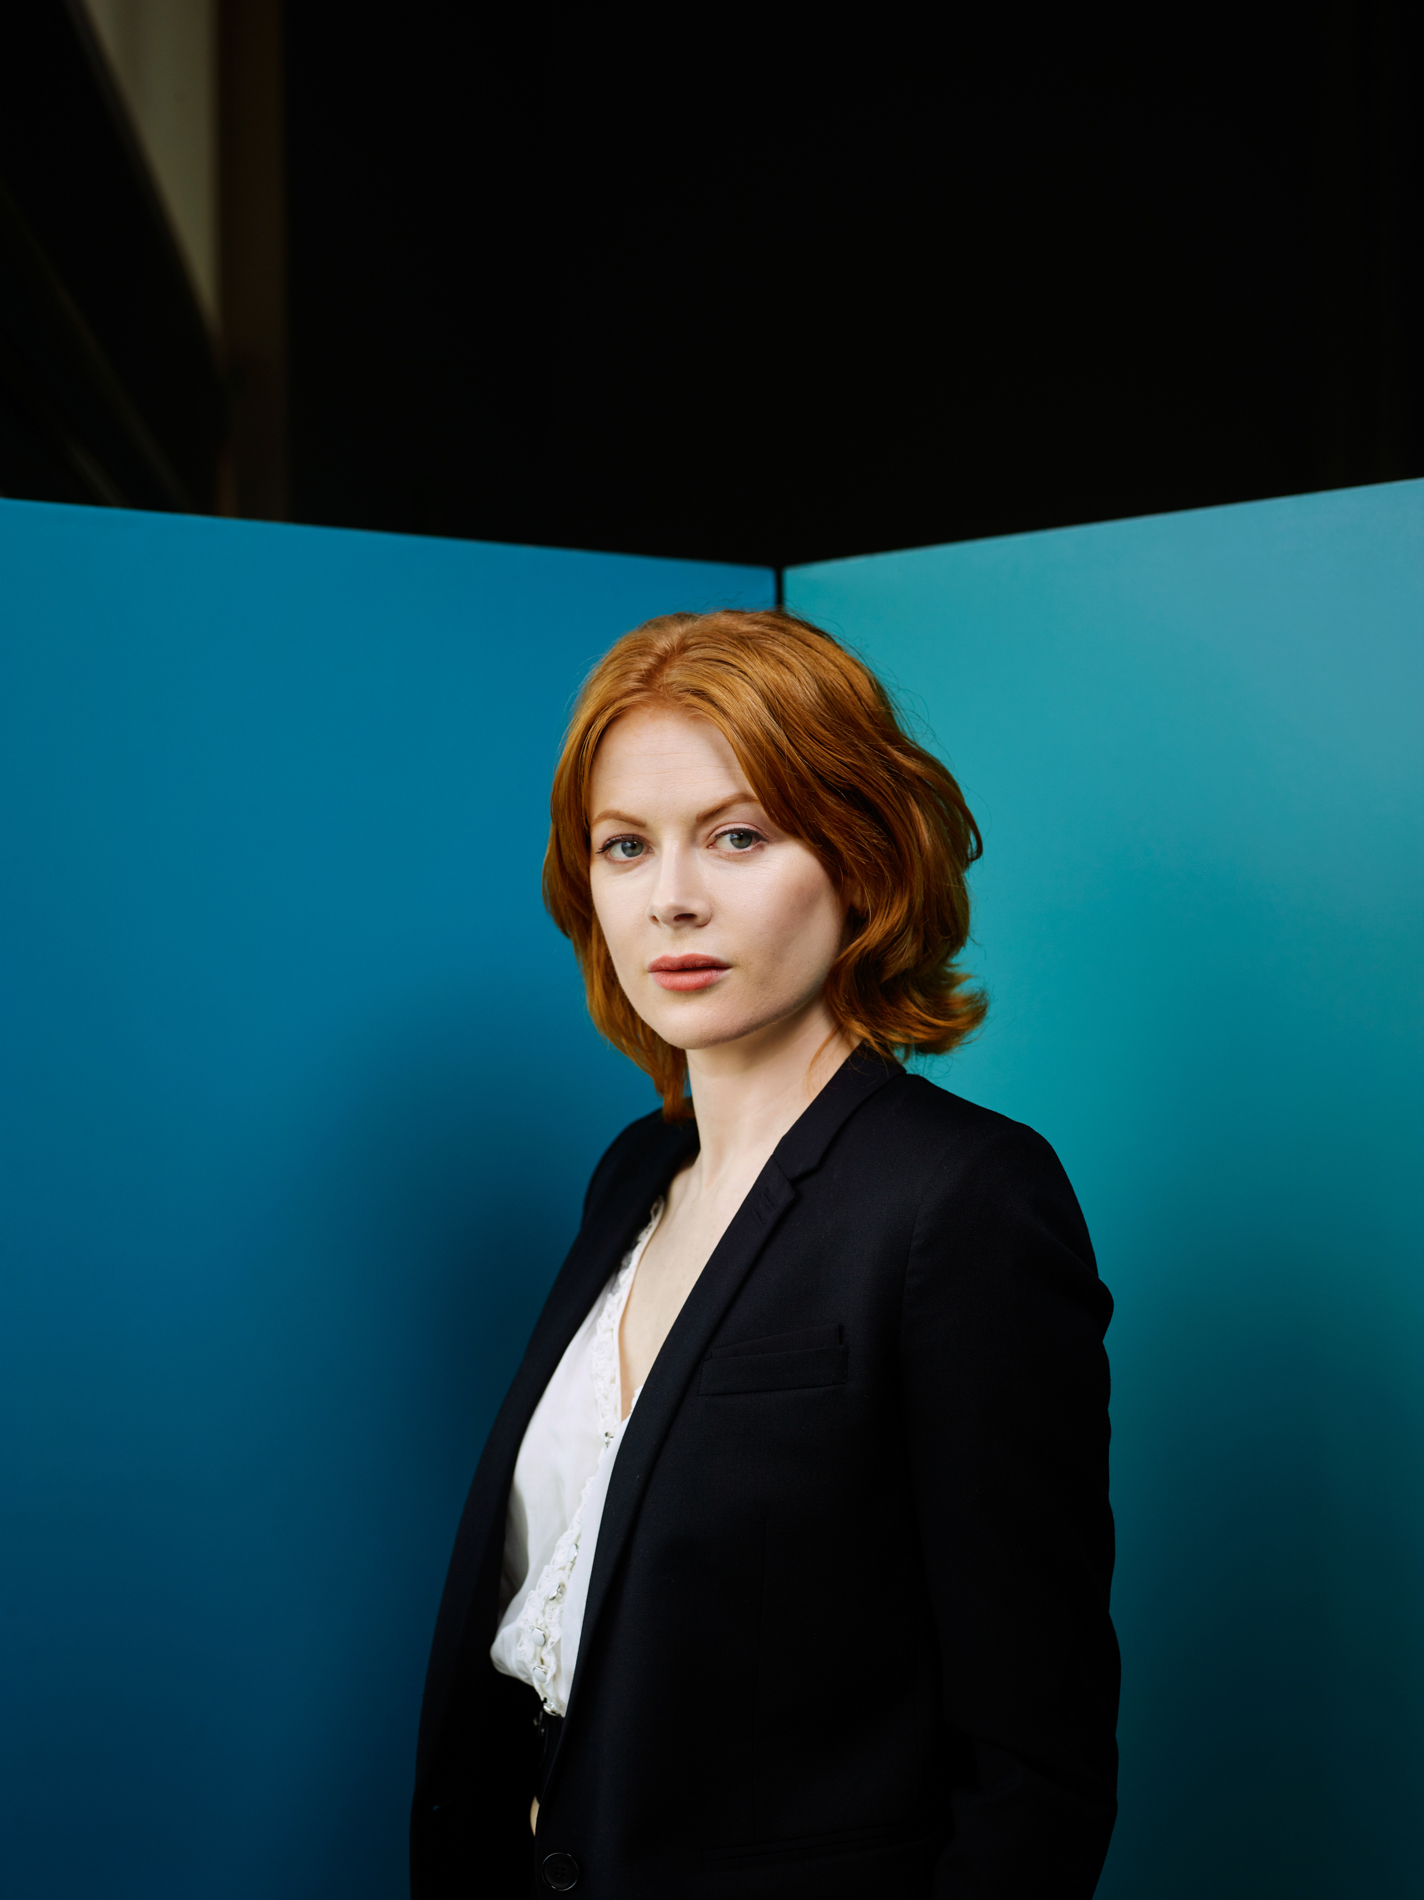 Actress Emily Beecham